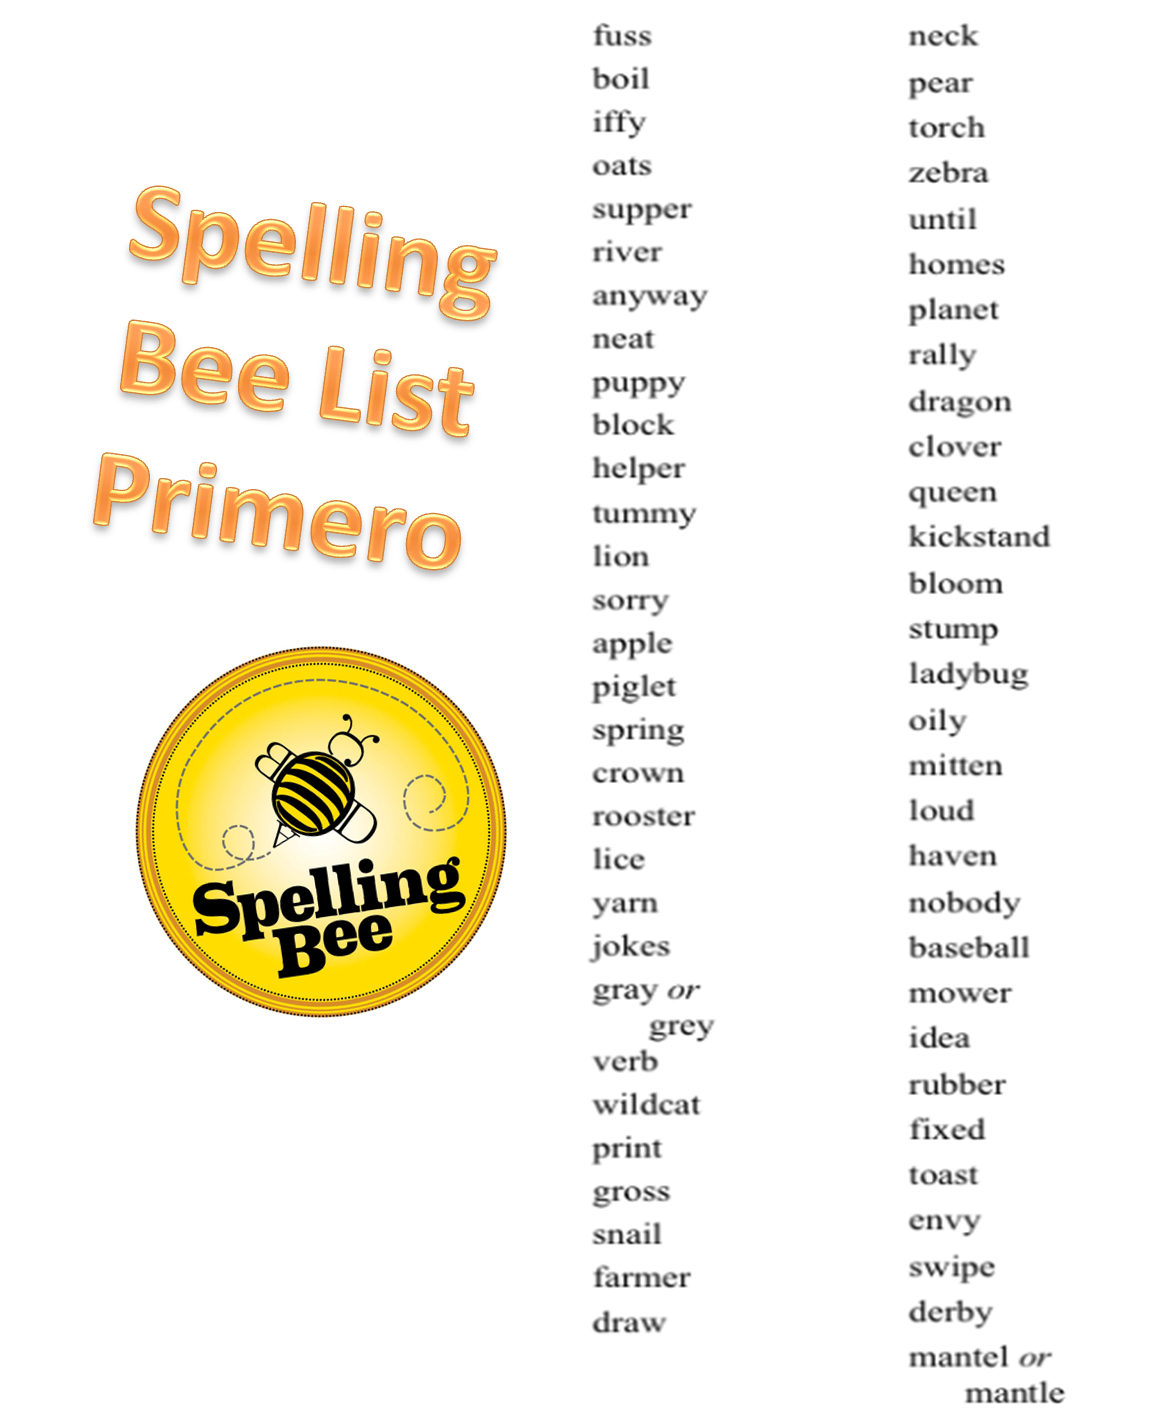 challenge spelling bee english 5th grade spelling words, spelling bee words, and vocabulary list list #: 3067 keywords/tags: spelling bee, 5th, elementary school, 5th grade spelling words, vocabulary word list, spelling word list 5th grade, word list for fifth grade, words 5th graders should know, spelling bee words for 5th grade.